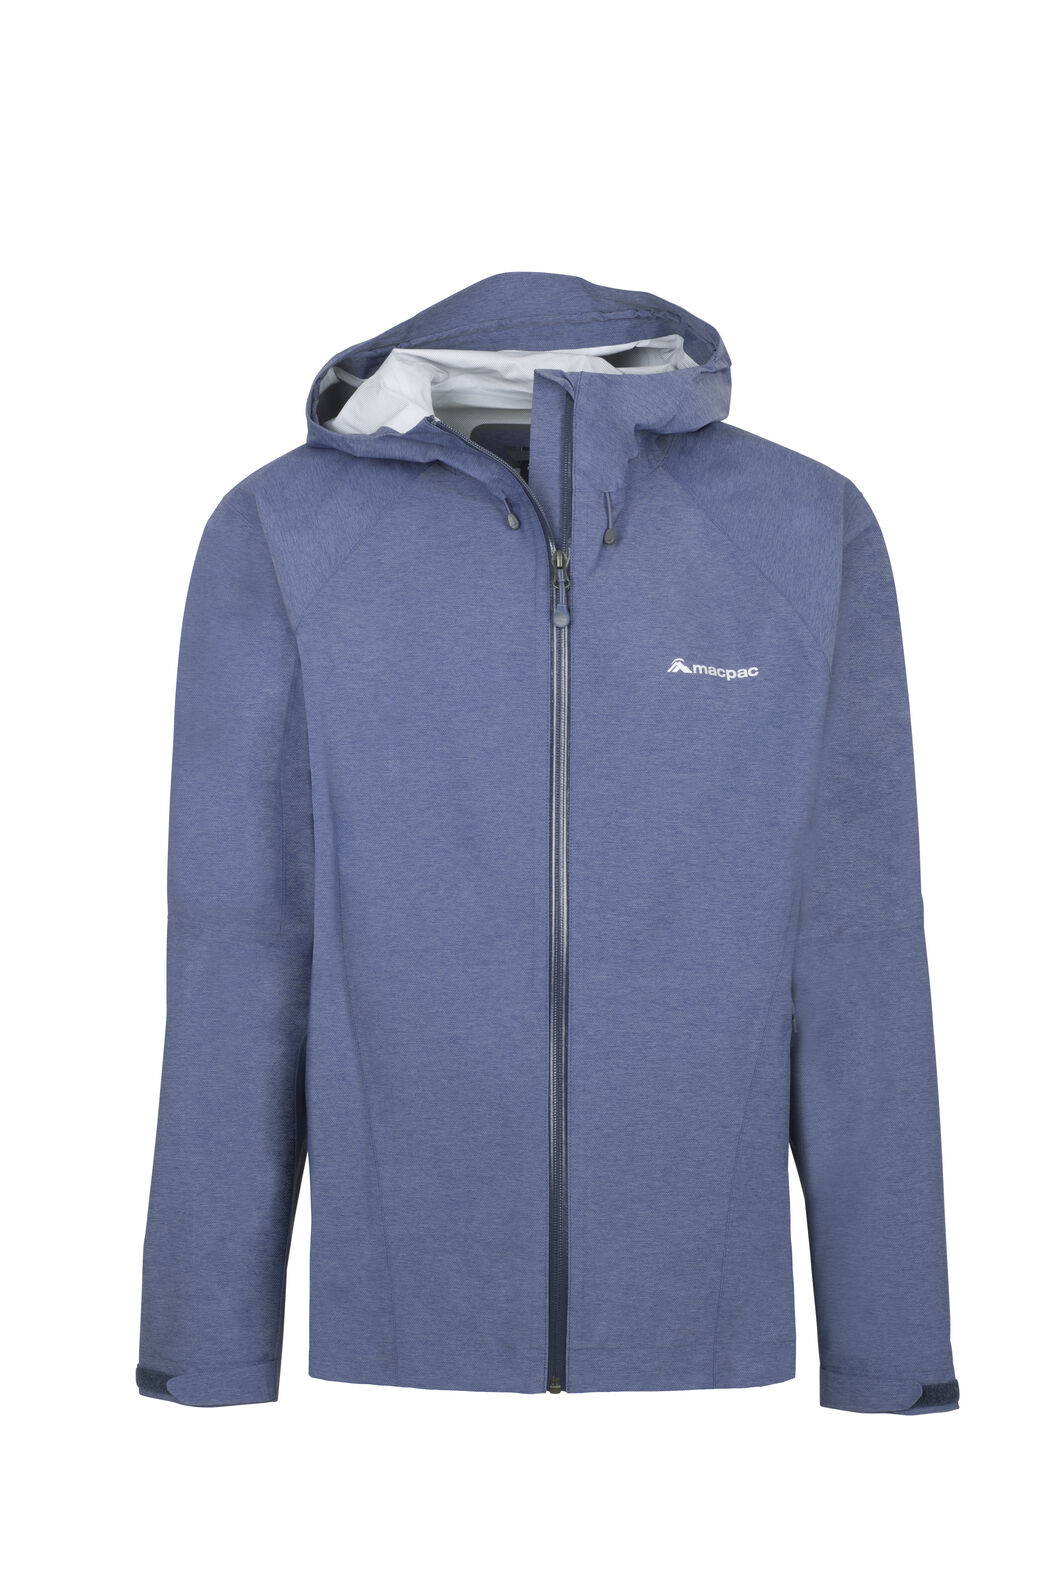 Macpac Less is Less Rain Jacket - Men's, Medieval Blue, hi-res